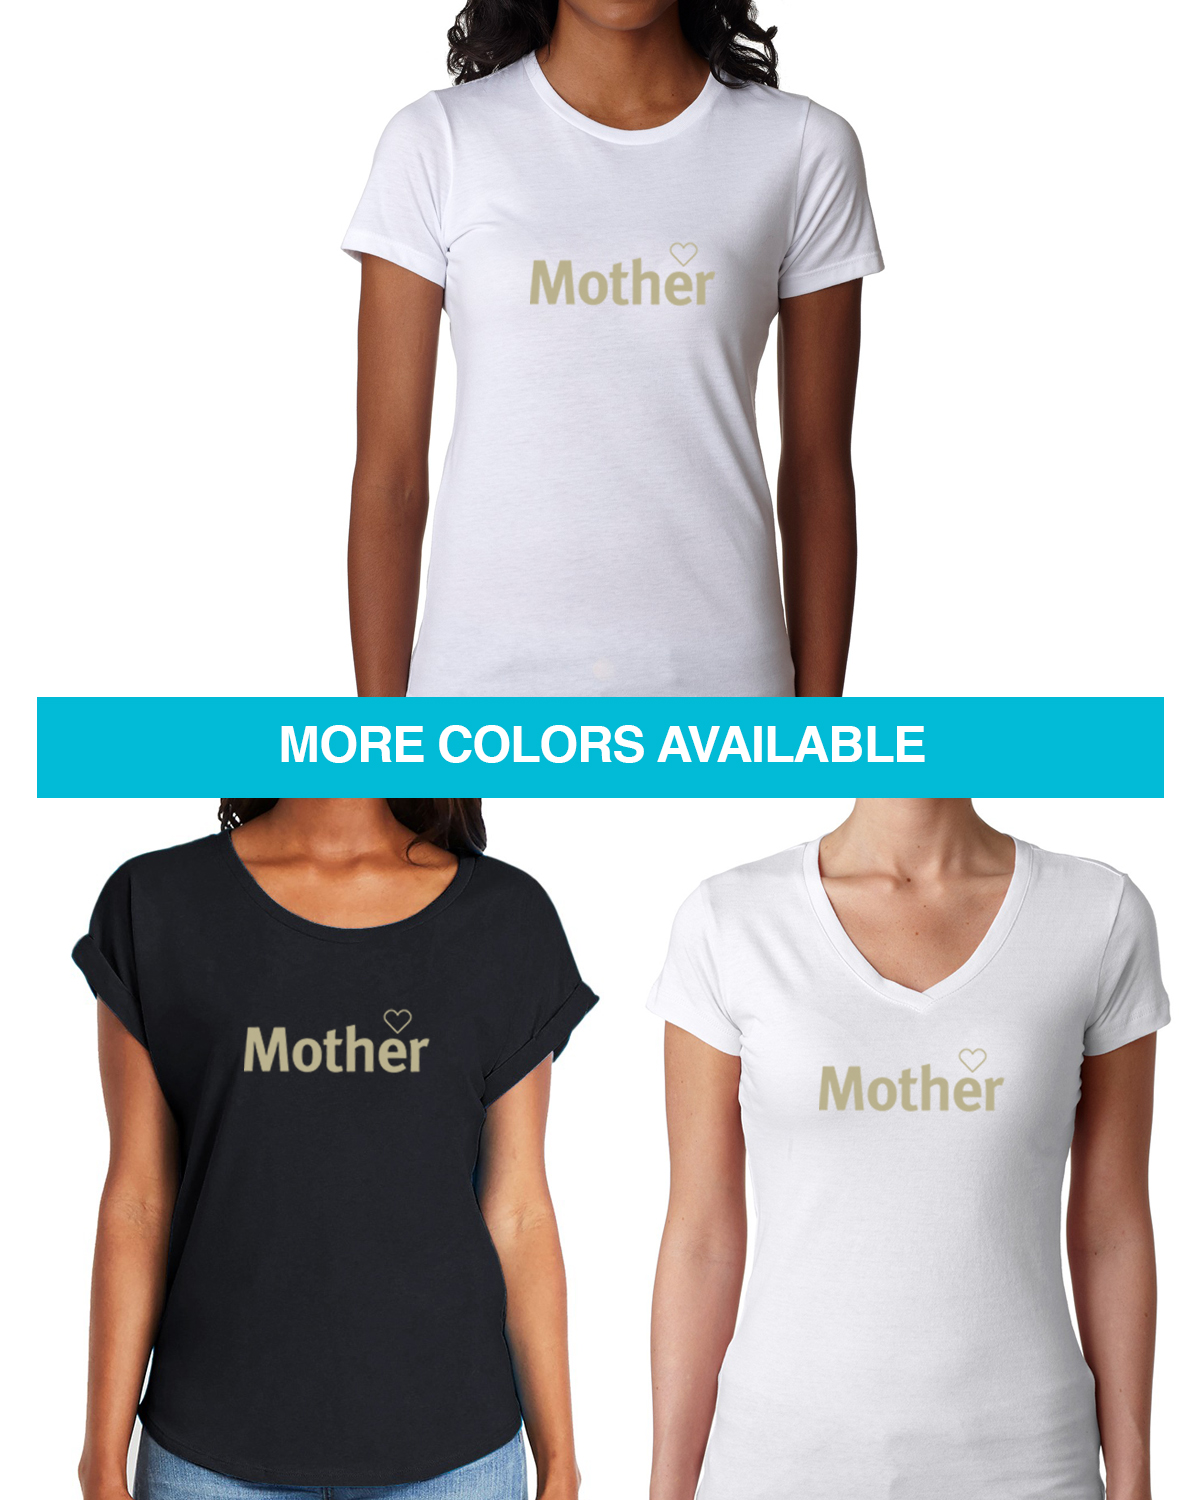 Mother Tees